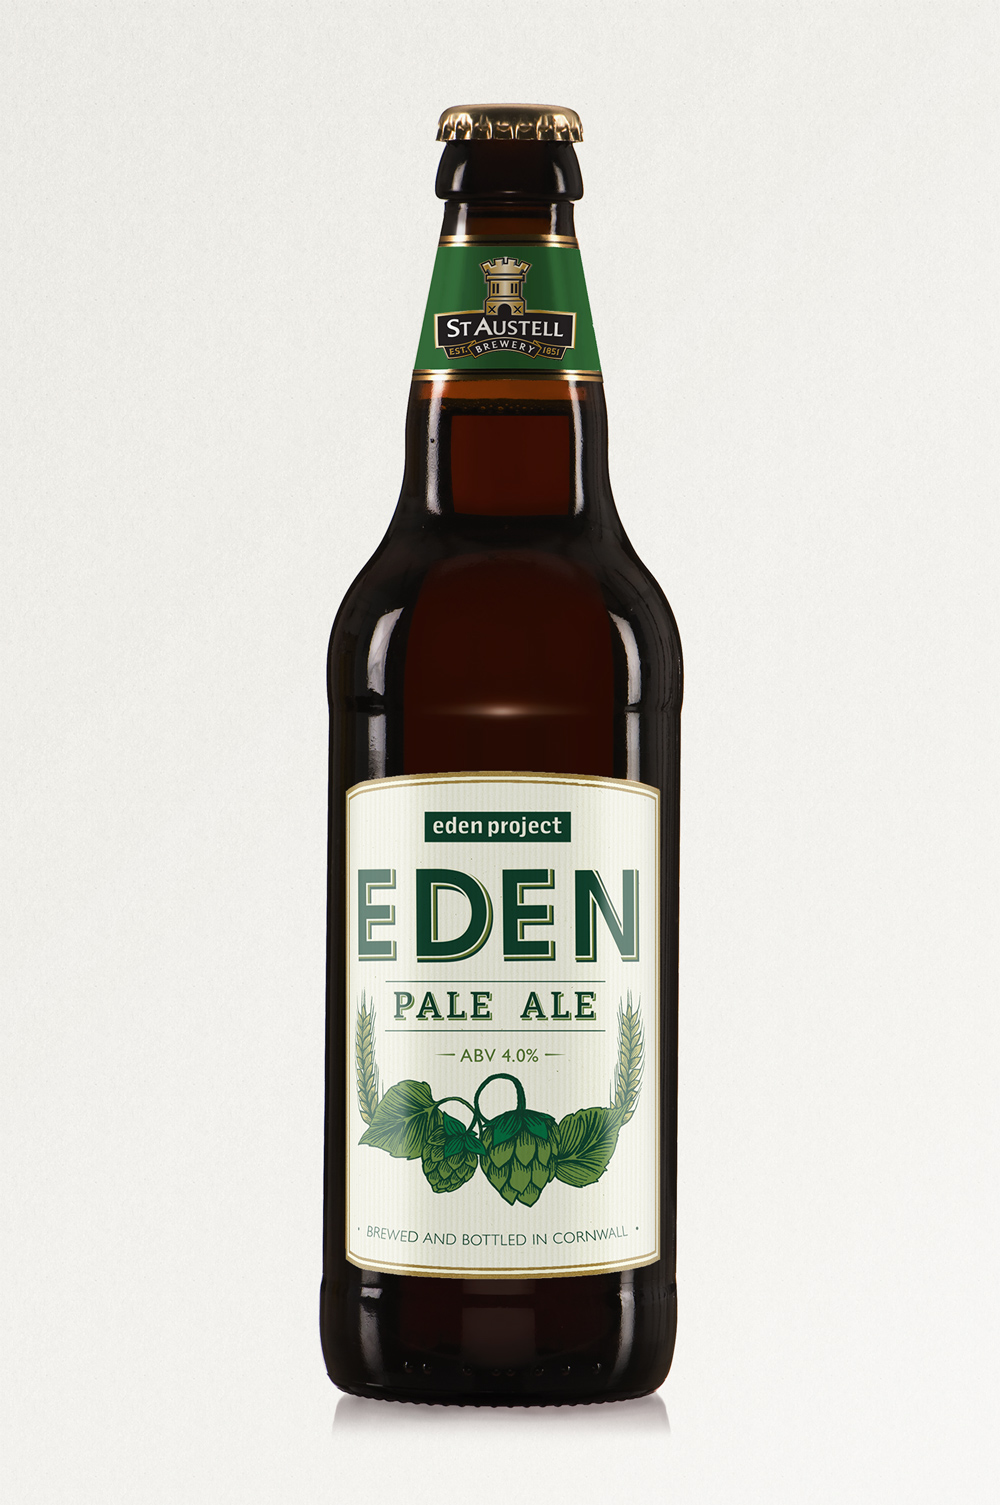 Eden Beer, St Austell Brewery, pale ale, bottle label design